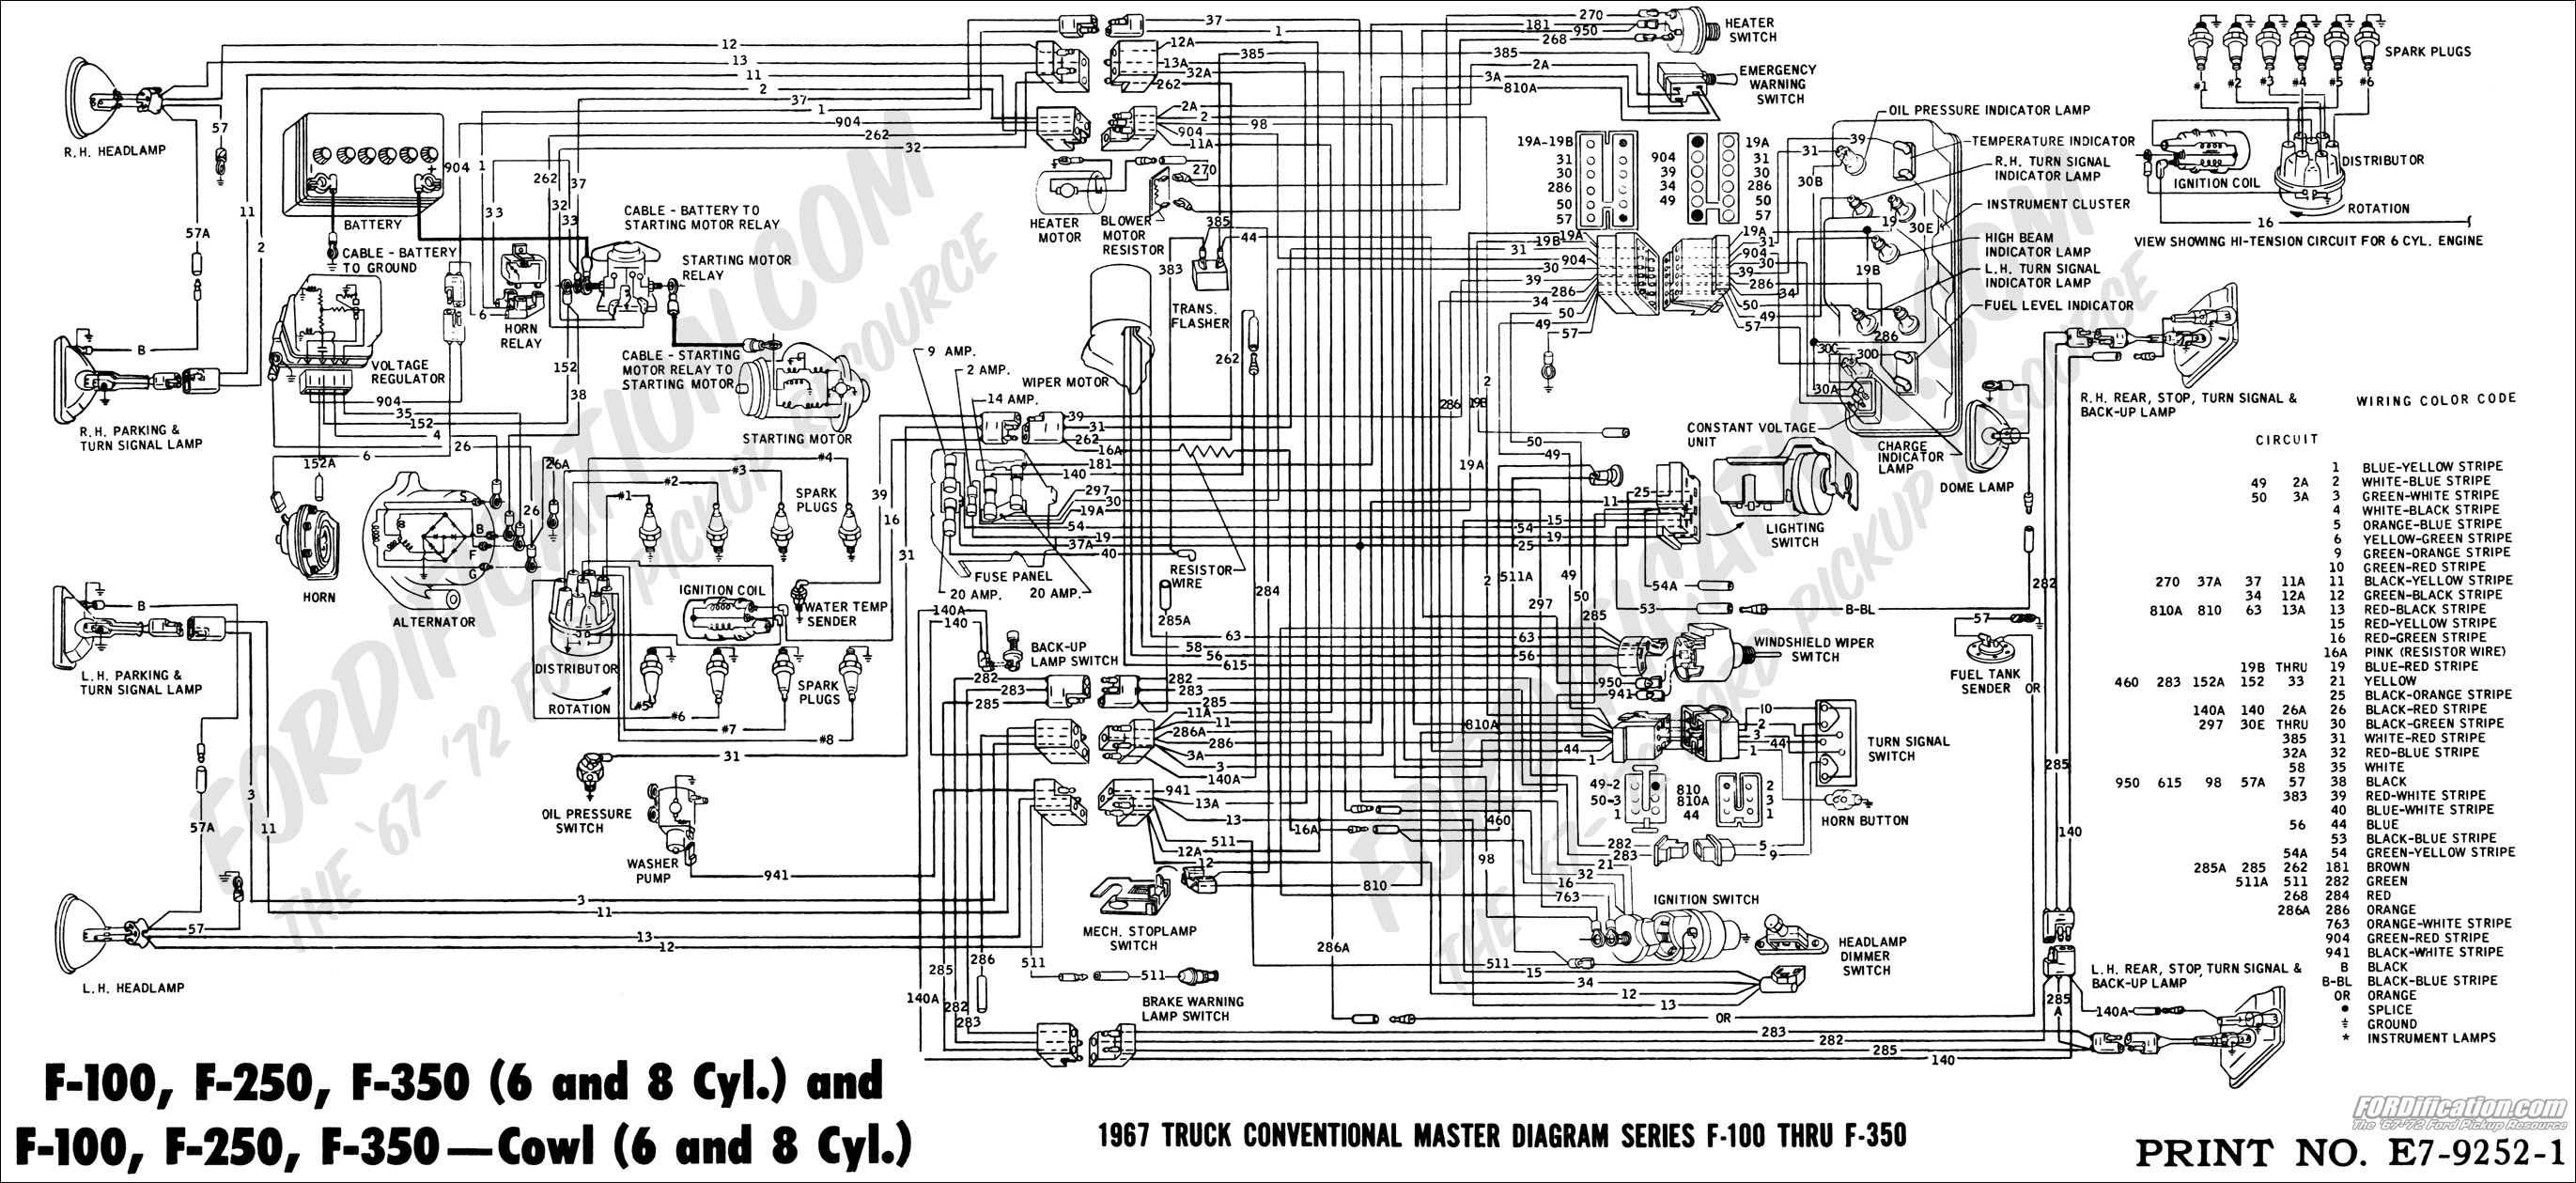 2001 Ford F350 Hvac Diagram Worksheet And Wiring Fuse Box Schematics Diagrams U2022 Rh Parntesis Co Crew Cab V10